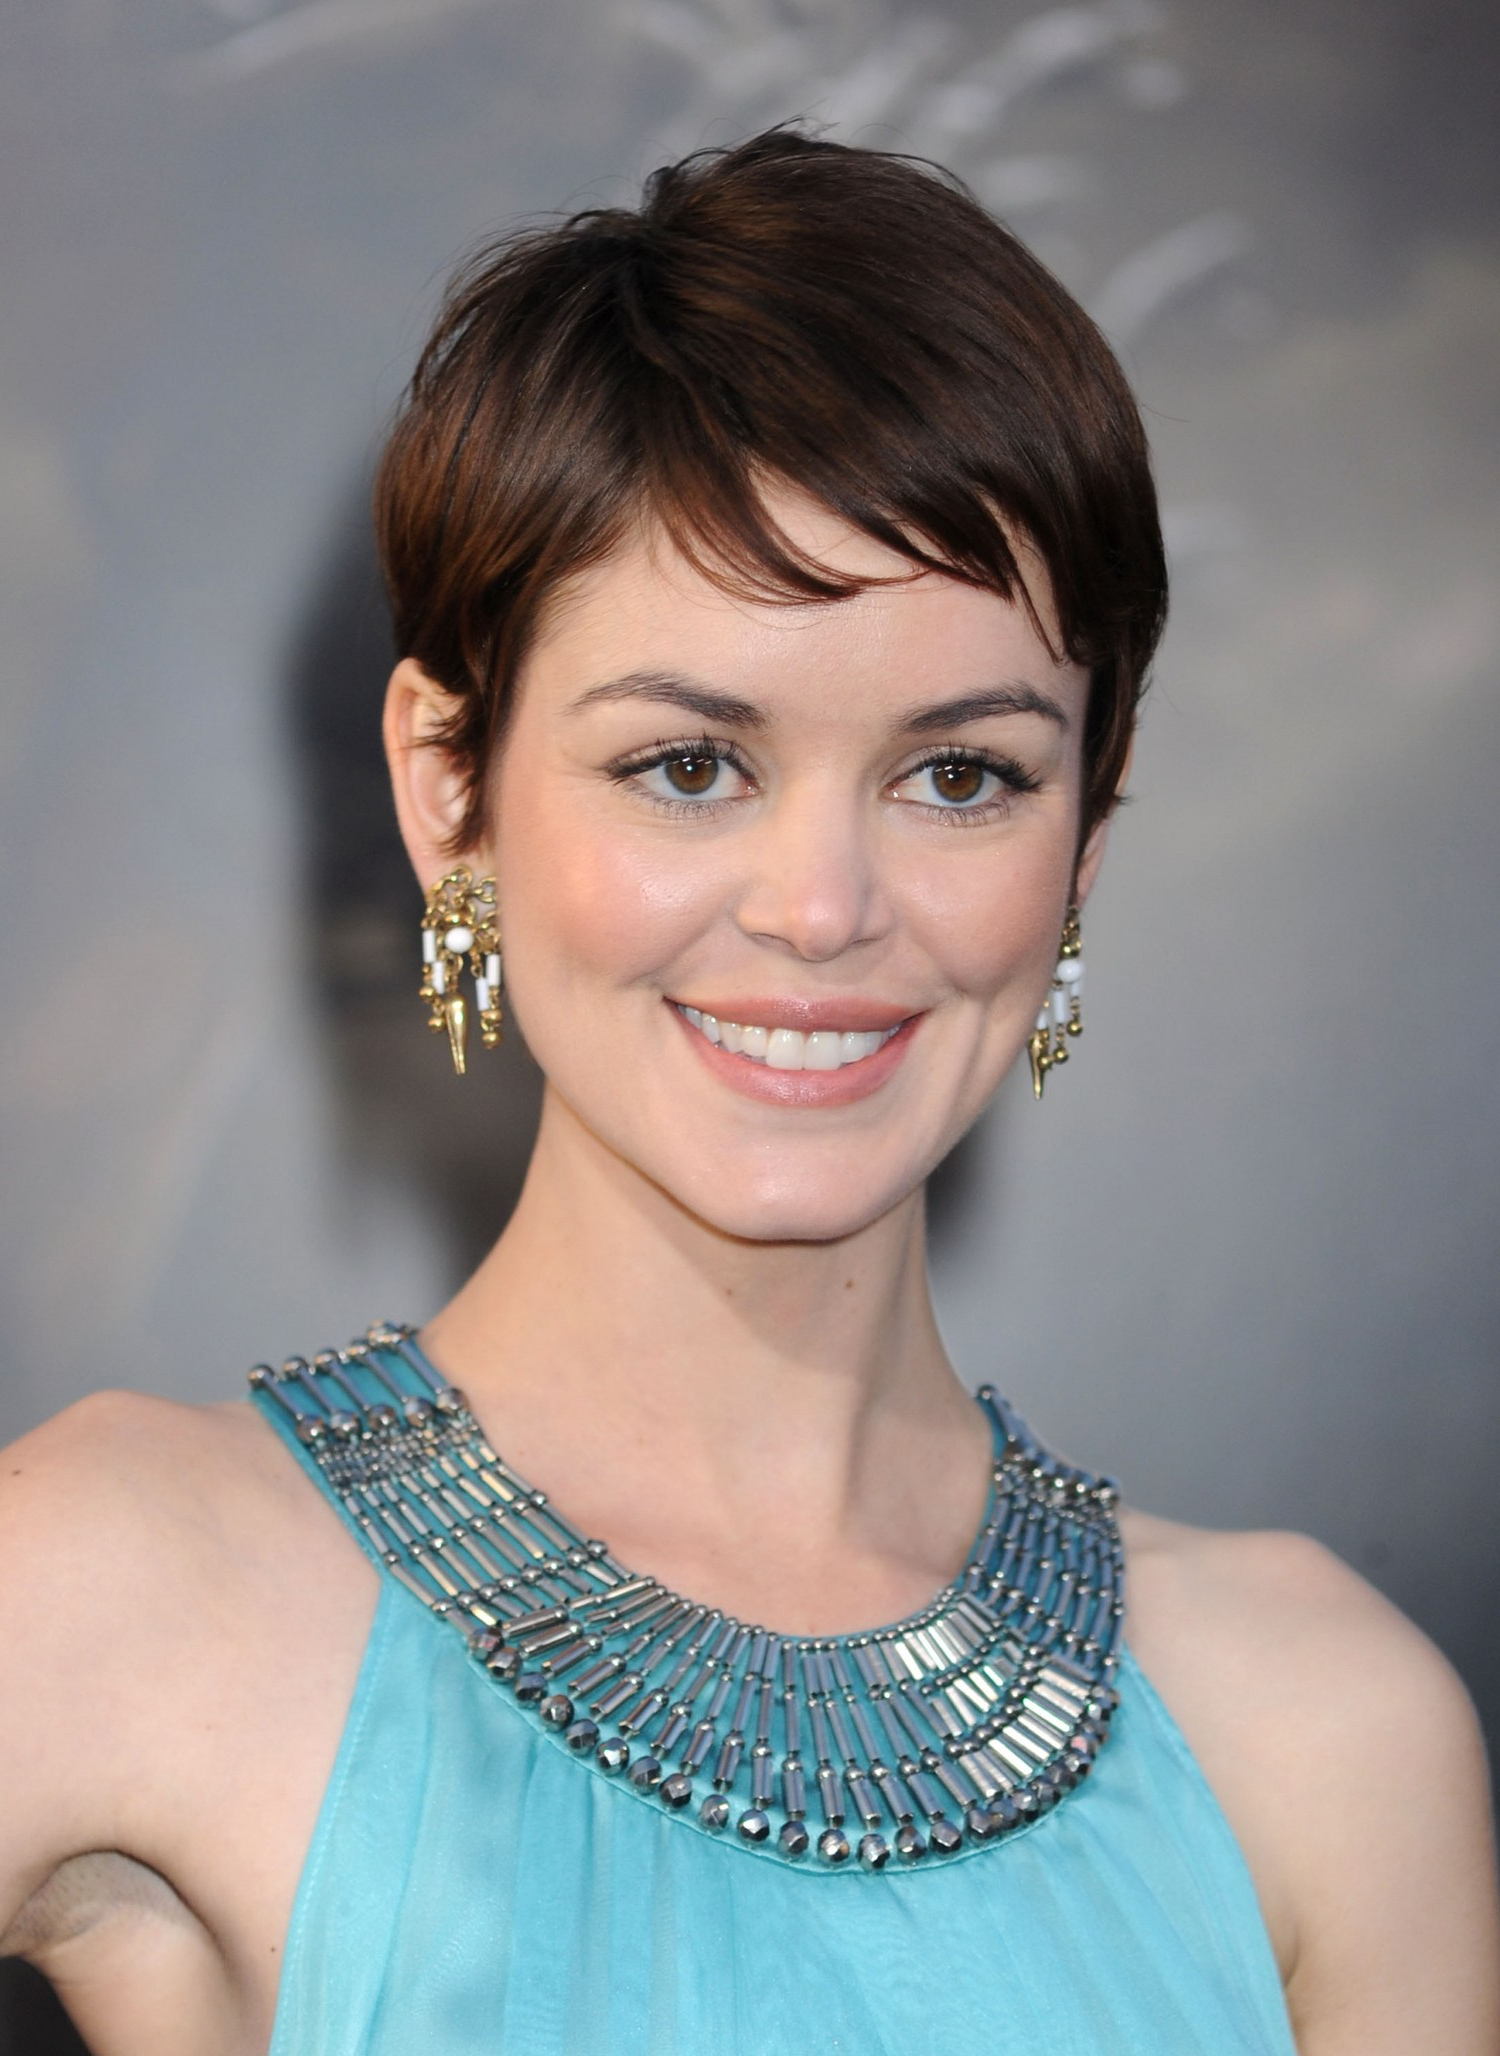 19 Cute Celebrity Haircuts To Consider – Glamour Regarding Cute Celebrity Short Haircuts (View 4 of 25)